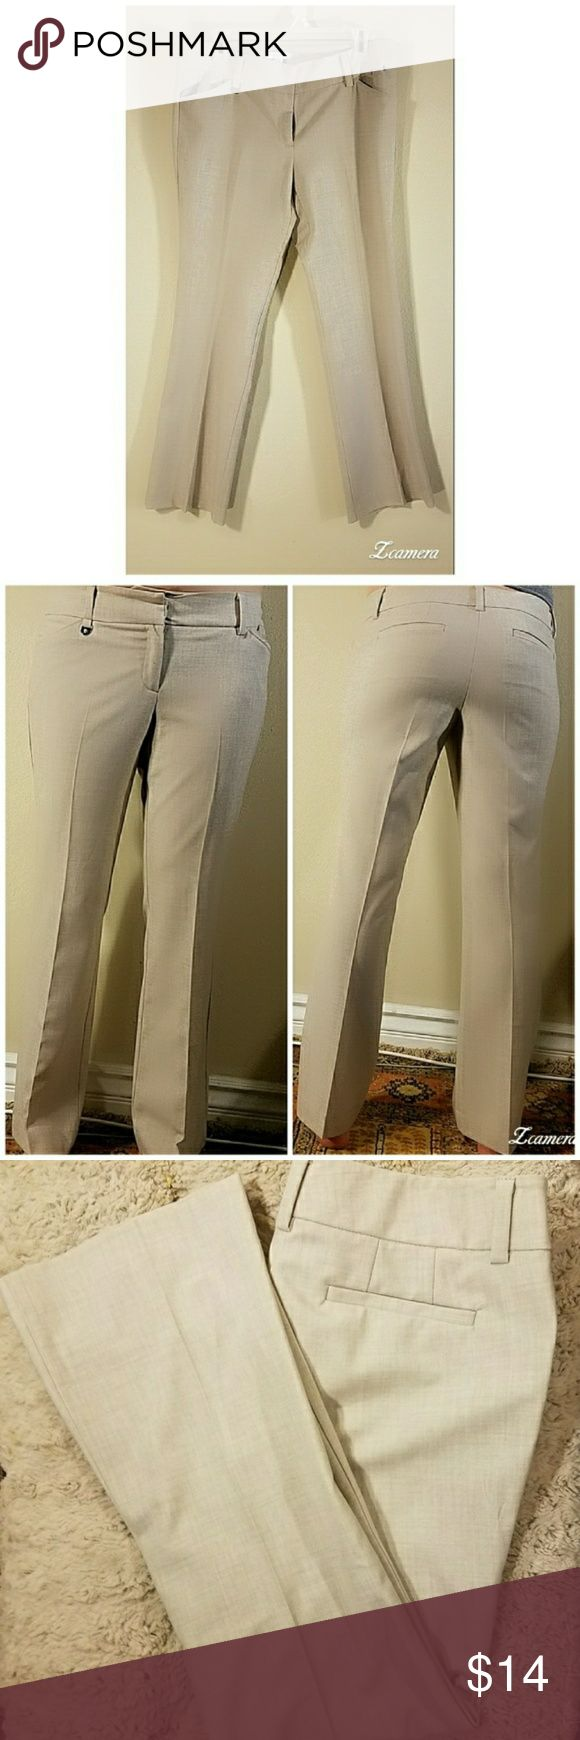 "New York & Co Light Beige Bootcut Dress Pants New York & Co Light Beige Bootcut Dress Pants  Worn Once Bootcut Style stretch dress pants inseam 27"" New York & Company Pants Boot Cut & Flare"